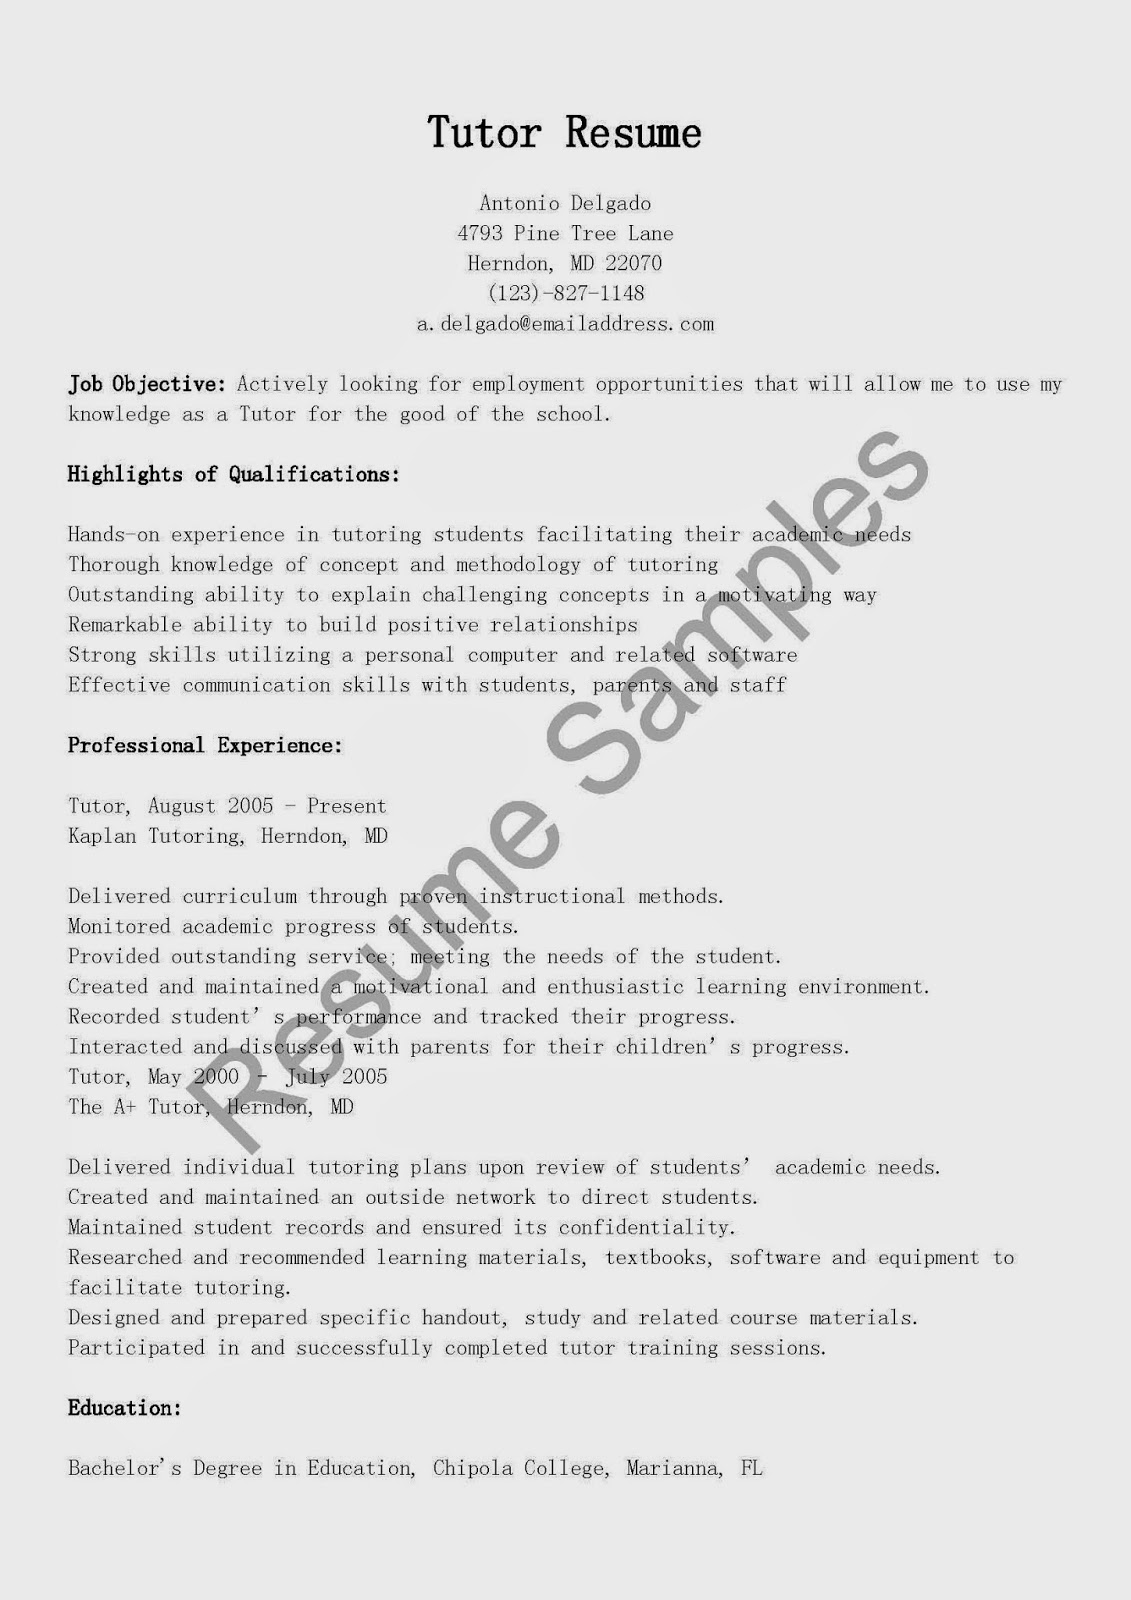 tutoring on resume tutor resume sample resume samples tutoring on resume 0222